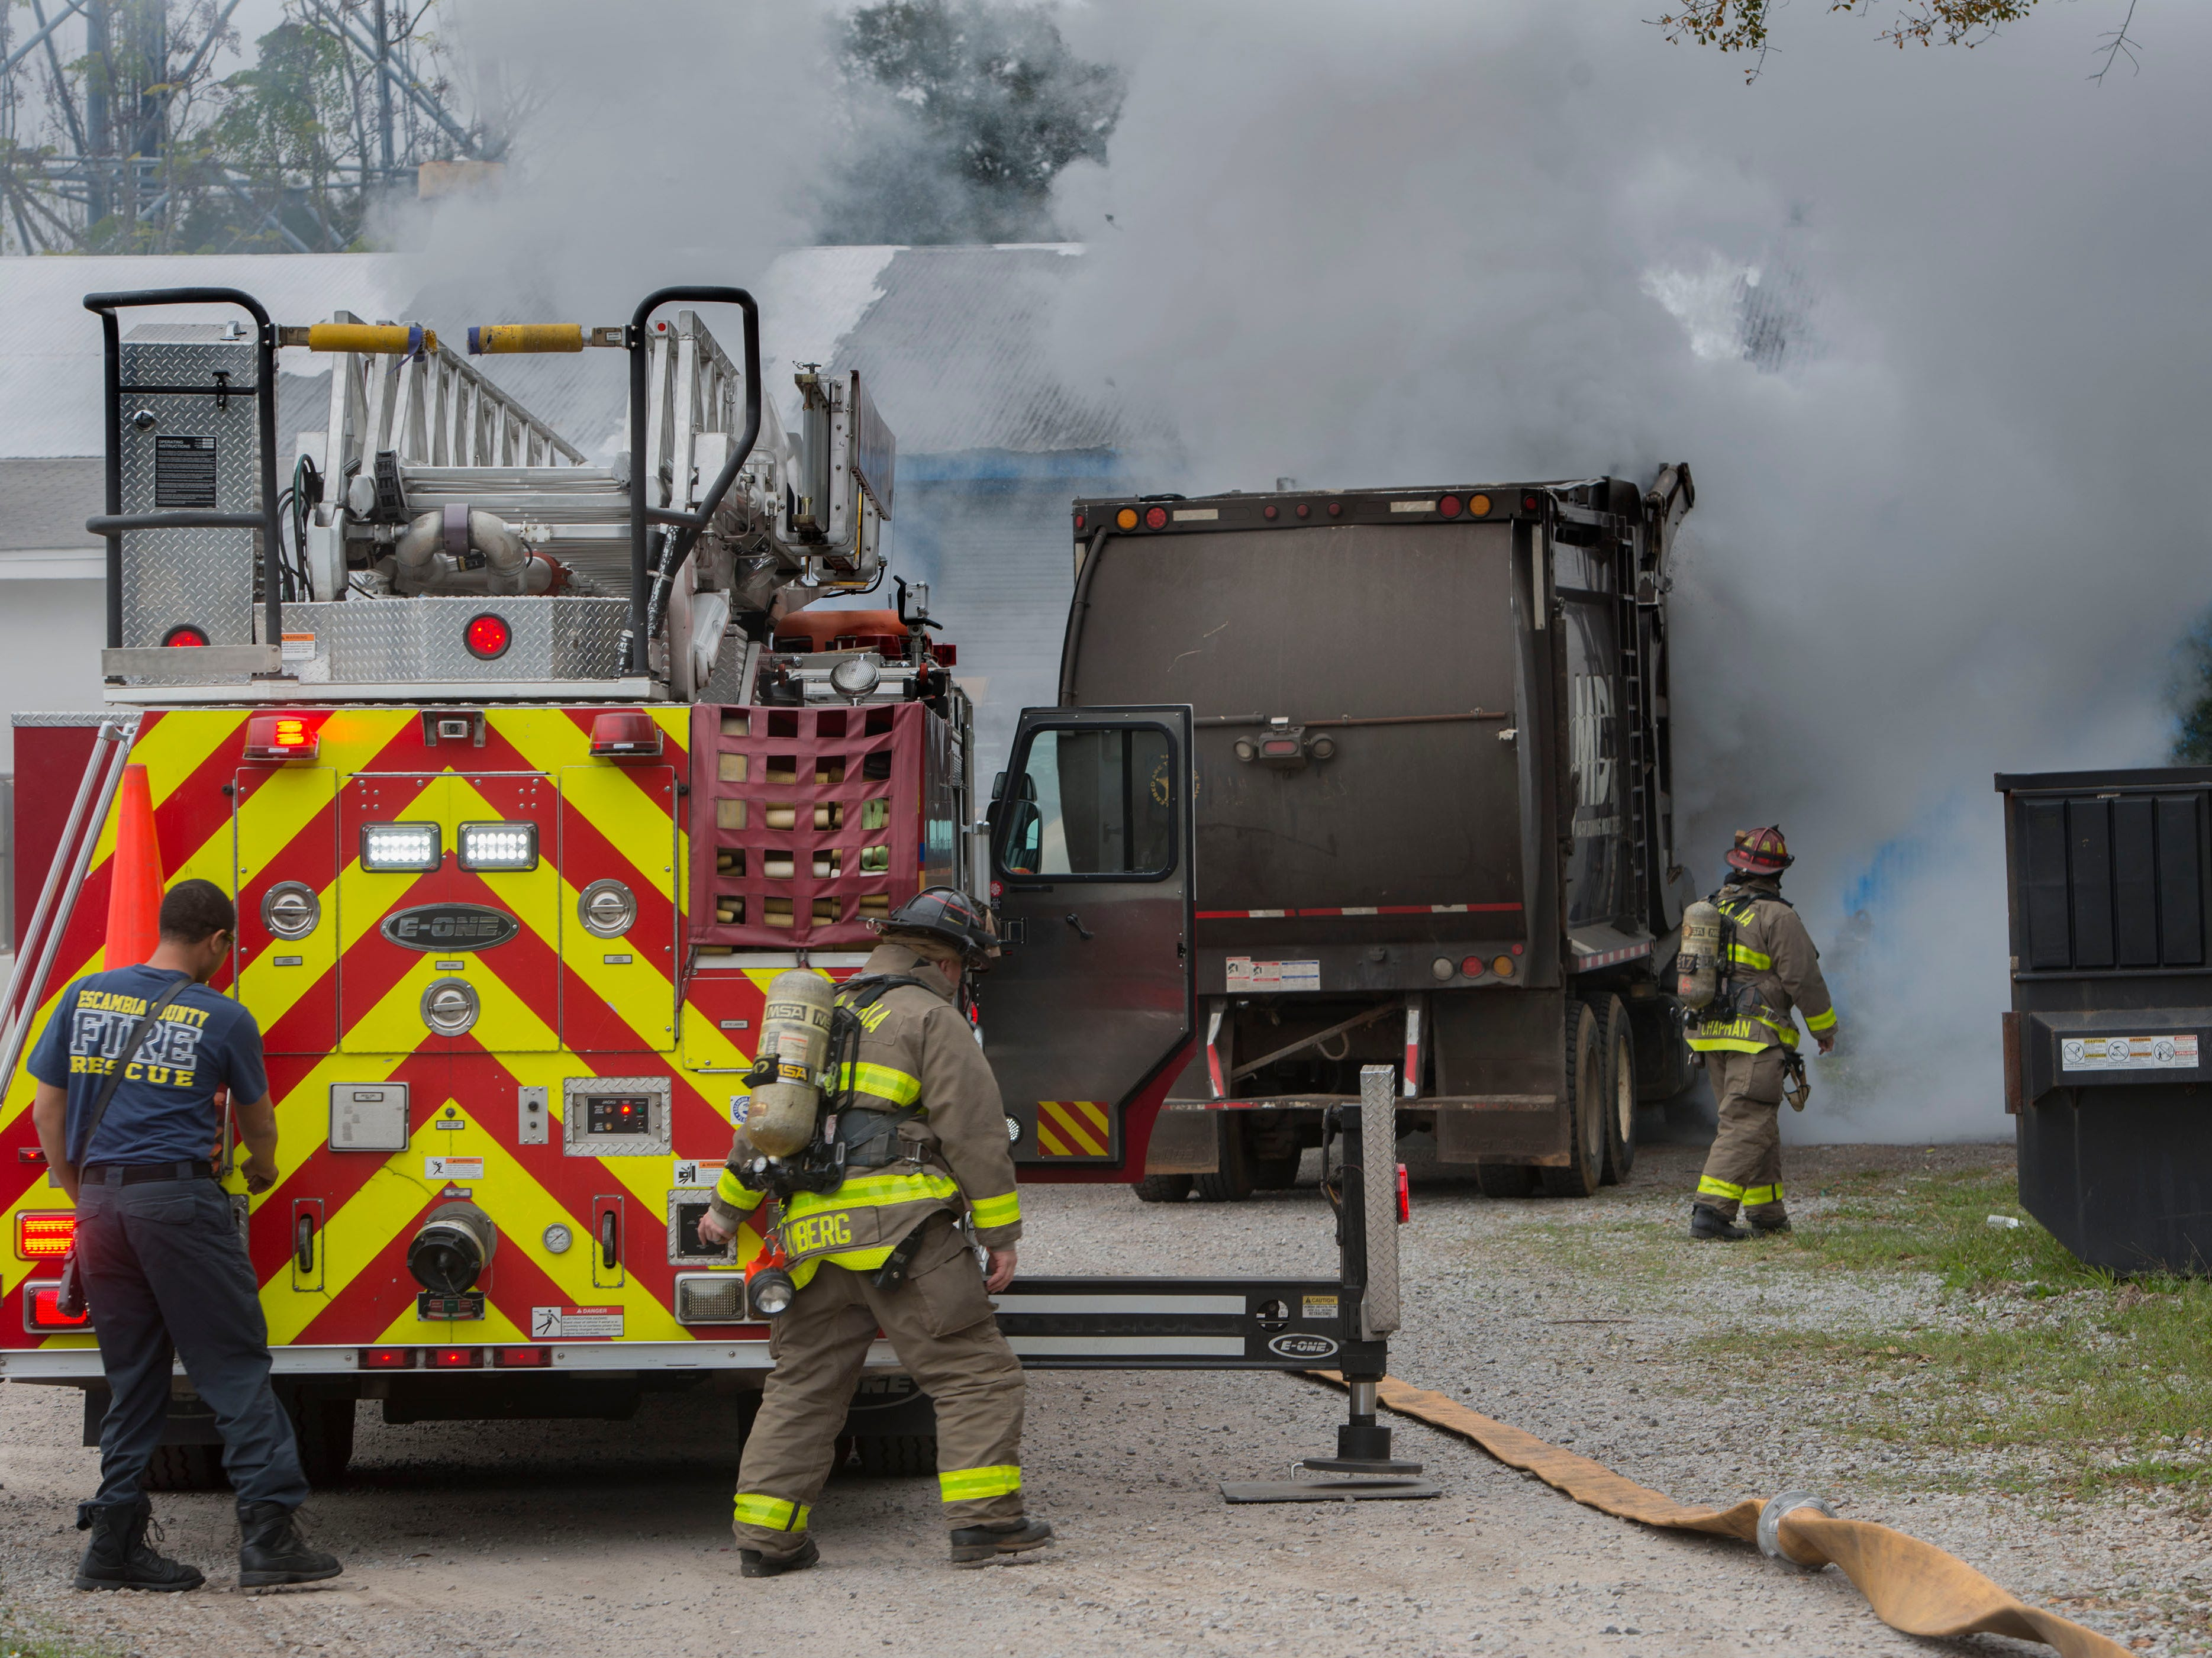 Firefighters battle a blaze in a garbage truck at Mark Dunning Industries Inc. Saturday, February 2, 2019.